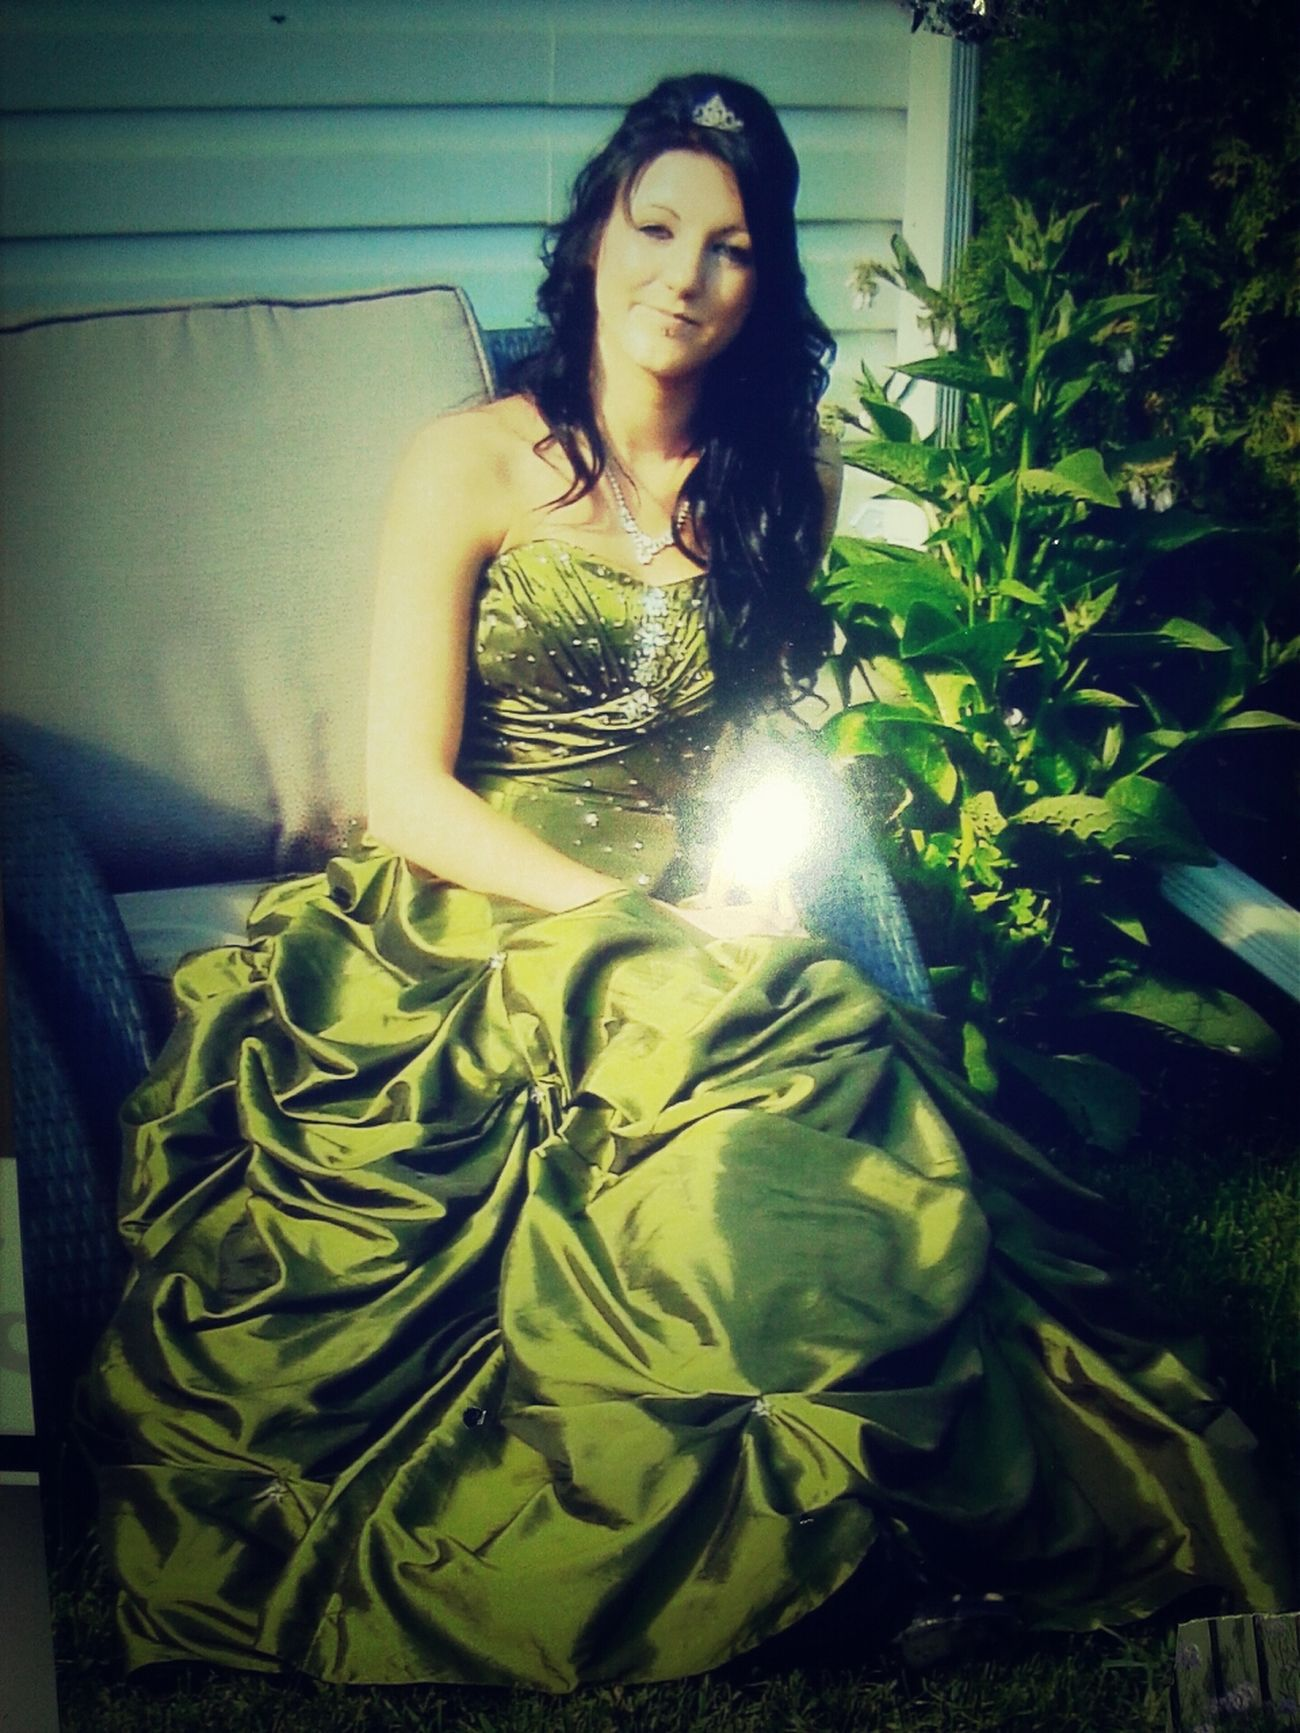 Things That Are Green Beautiful ♥ Dress Graduation 2011 #memories #grad #2011 #Best #Feeling #greenDress #guess #heels #smiles #loved #every #minute